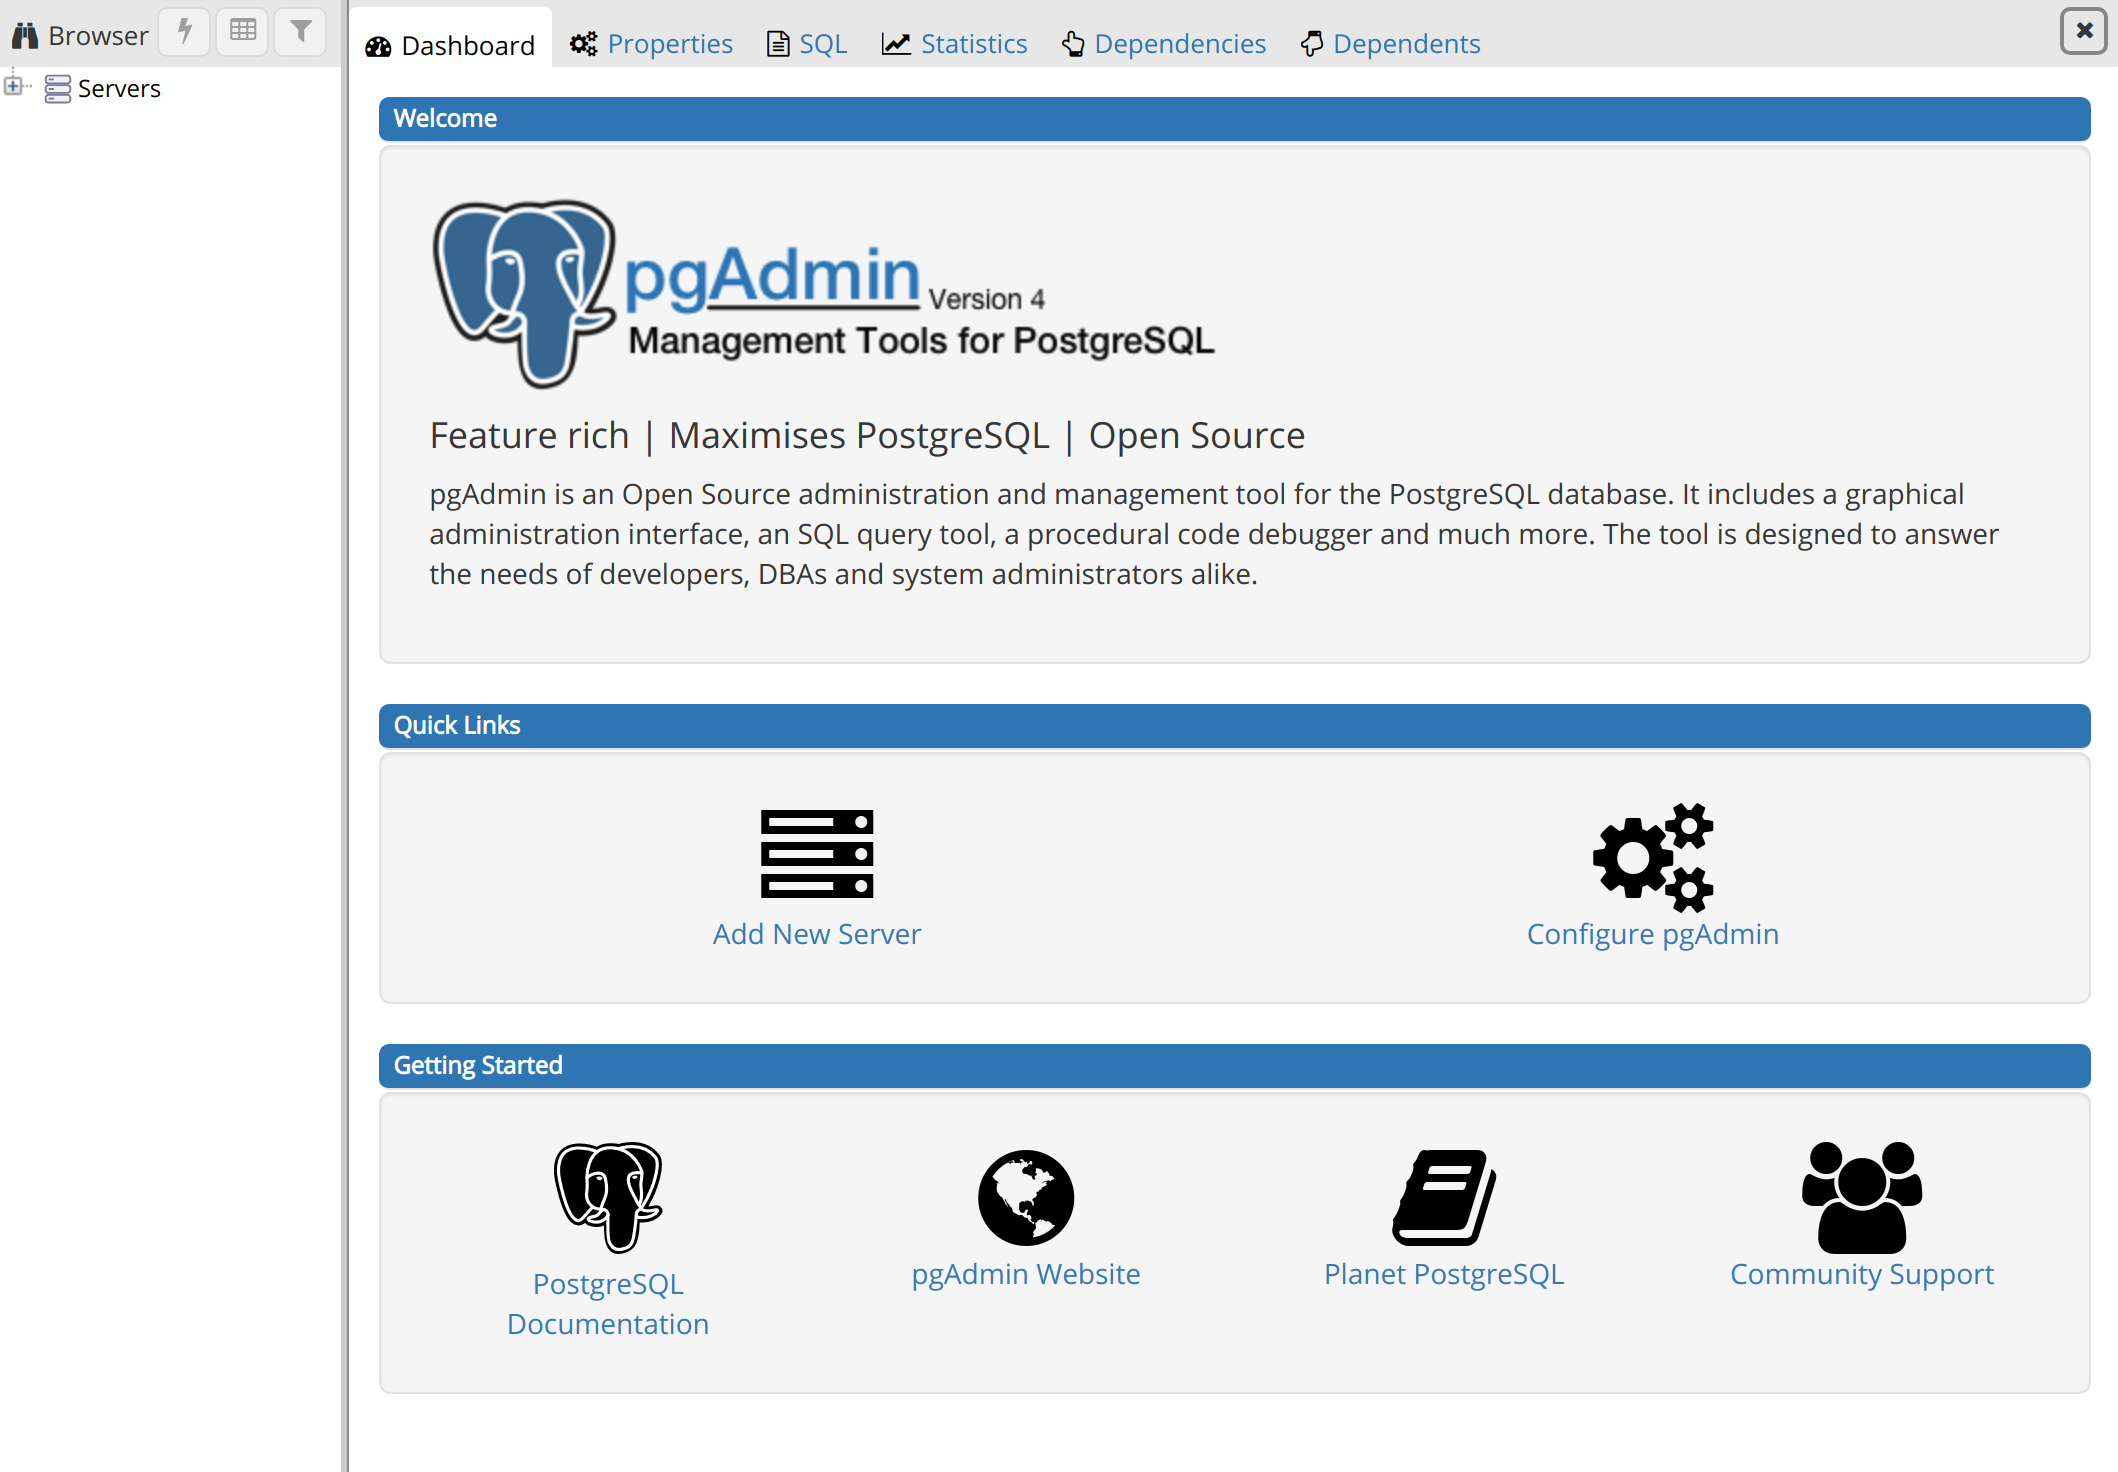 pgAdmin Welcome Page